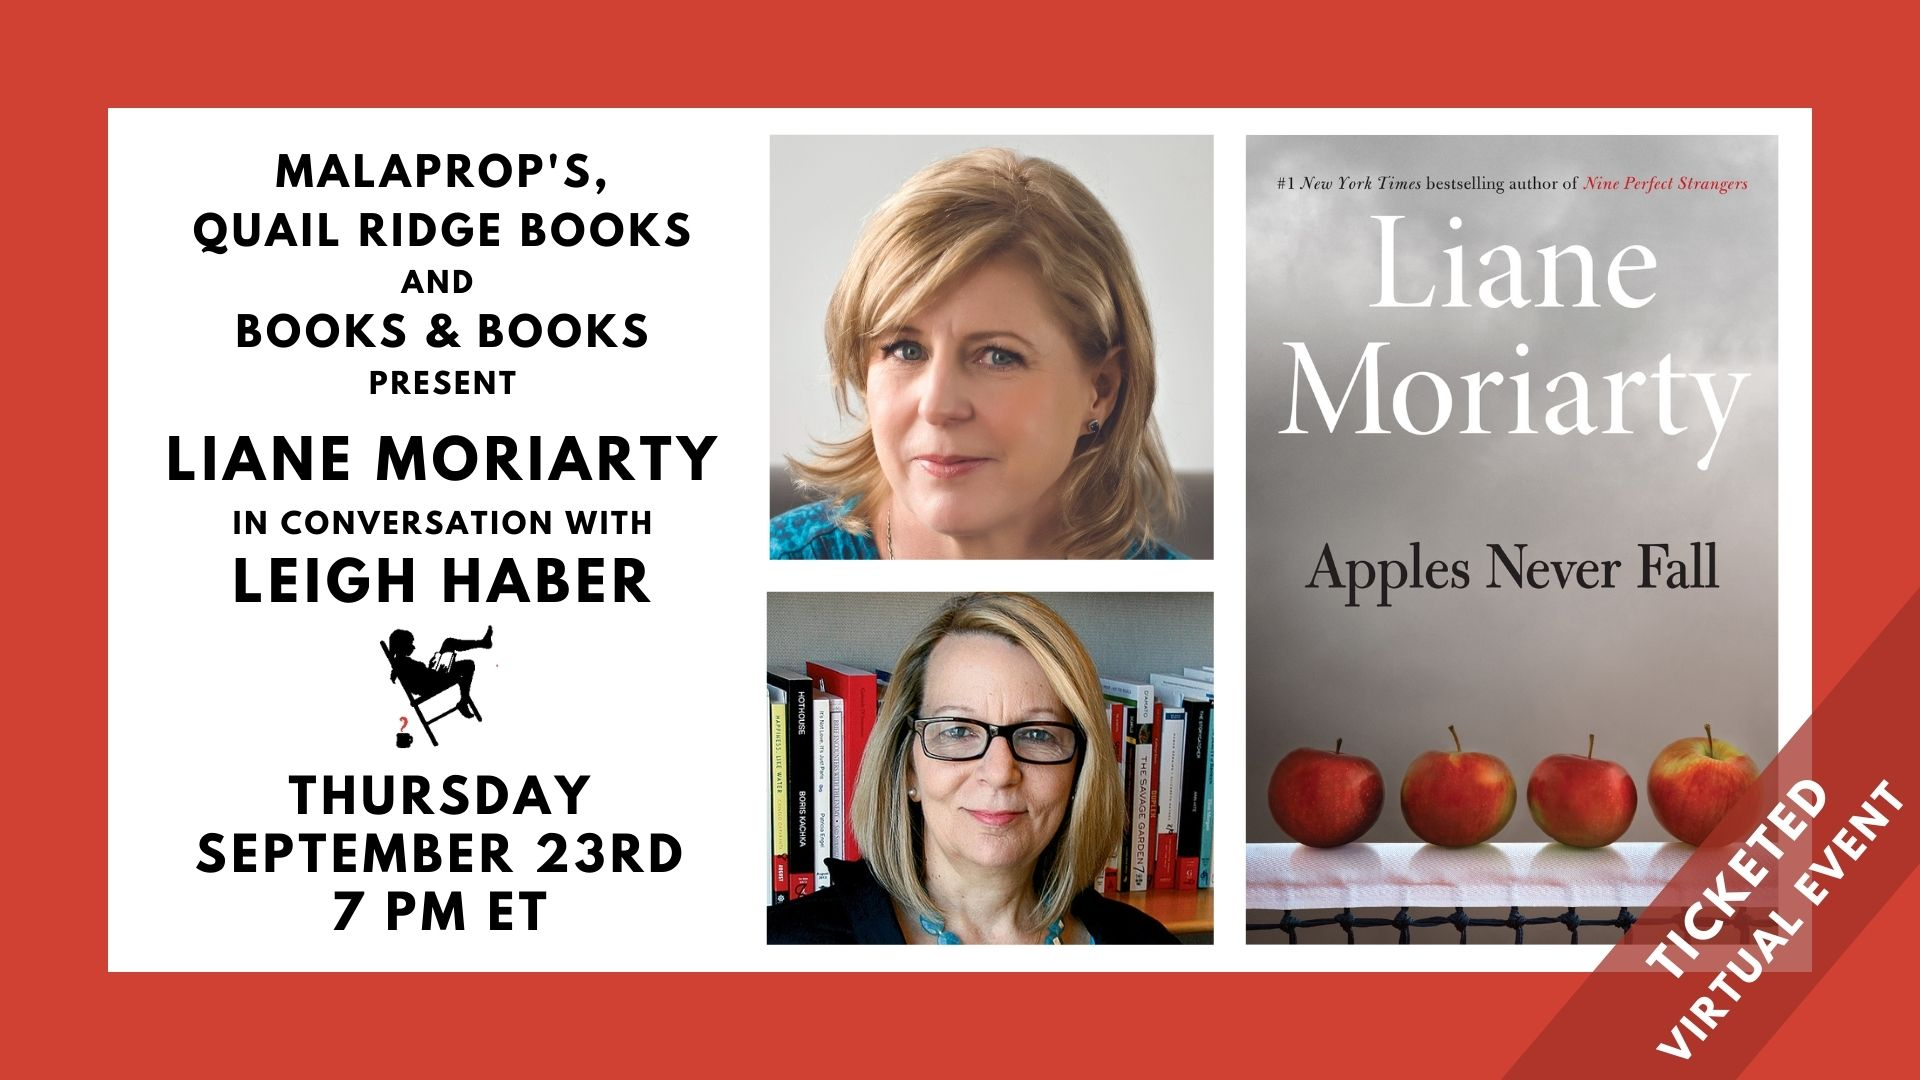 Malaprop's, Quail Ridge Books and Books & Books present Liane Moriarty in conversation with Leigh Haber. Thursday, September 23rd, 7 PM ET. Image shows photos of both presenters and front cover of Liane Moriarty's book APPLES NEVER FALL.